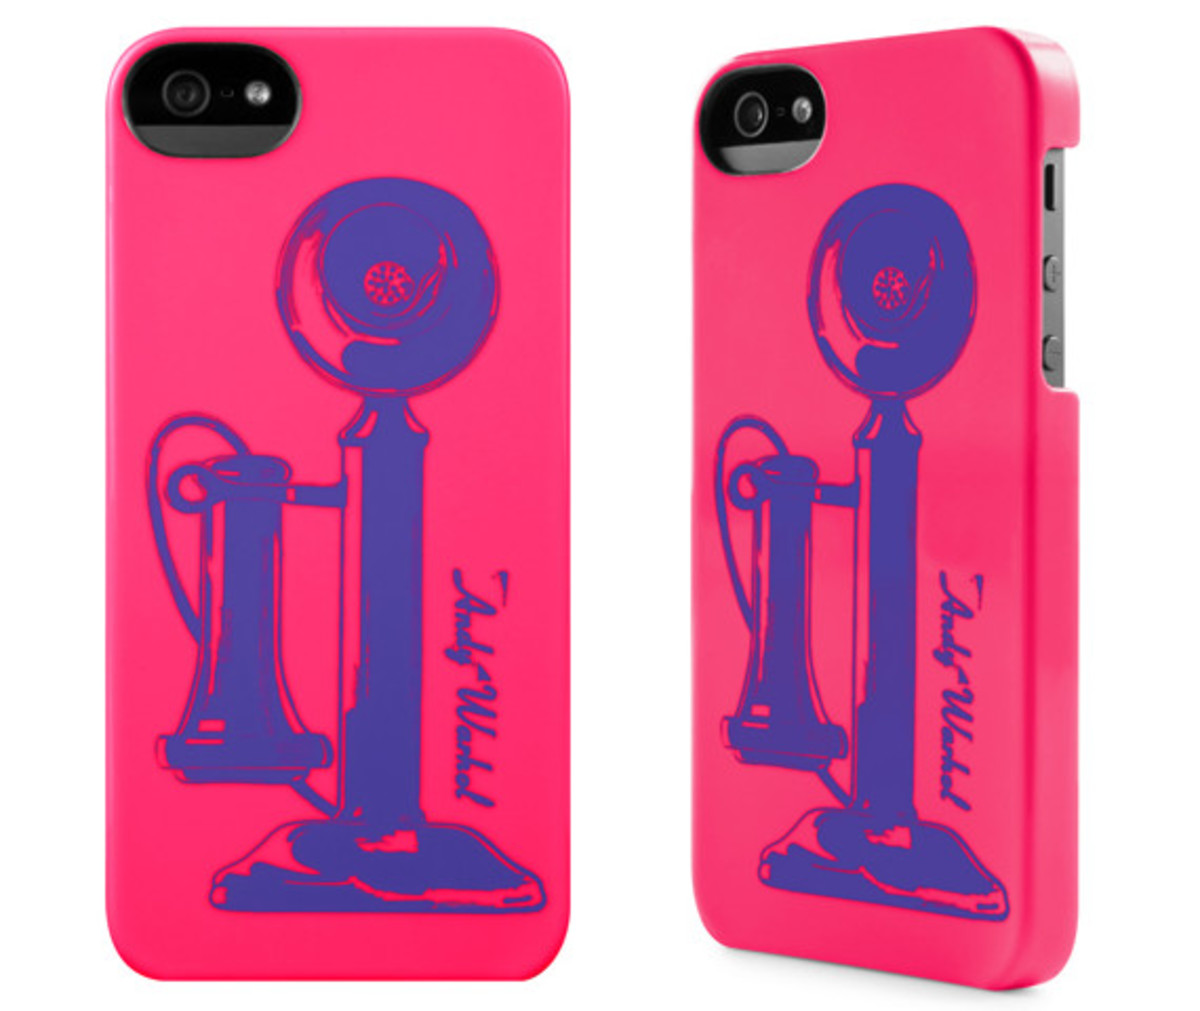 incase-for-andy-warhol-collection-iphone-5-cases-08